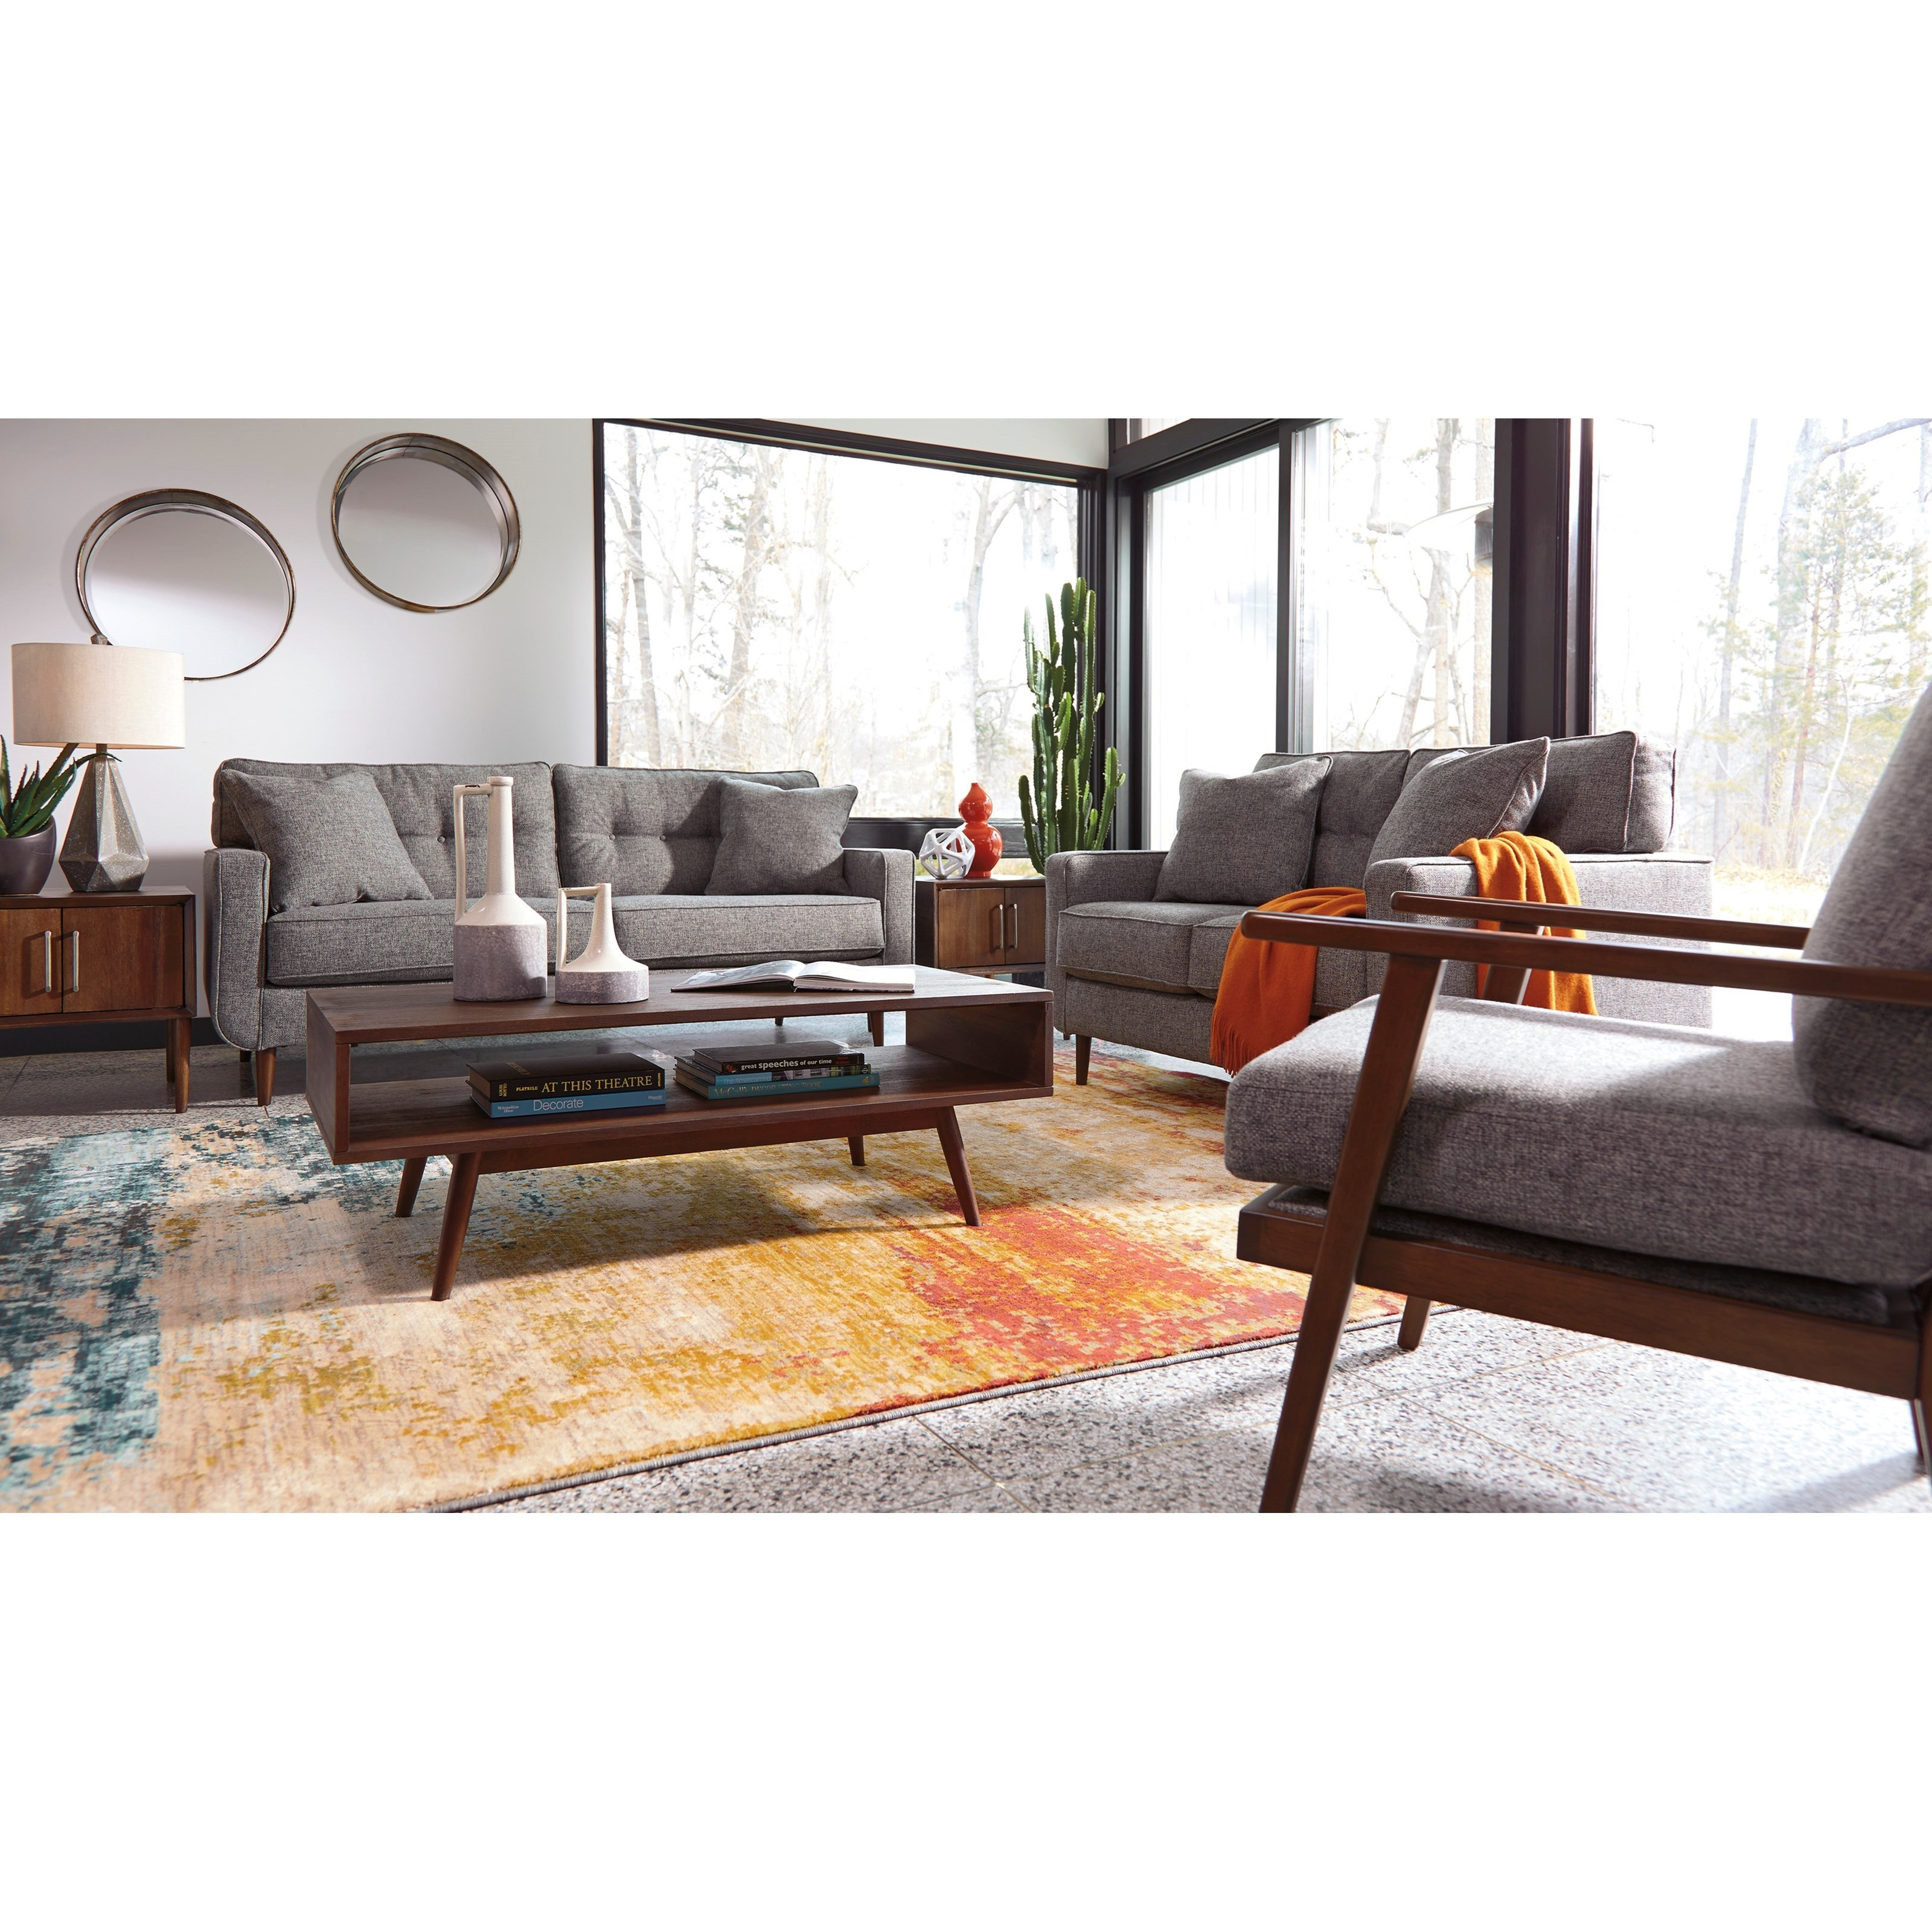 Ashley Furniture Zardoni Stationary Living Room Group